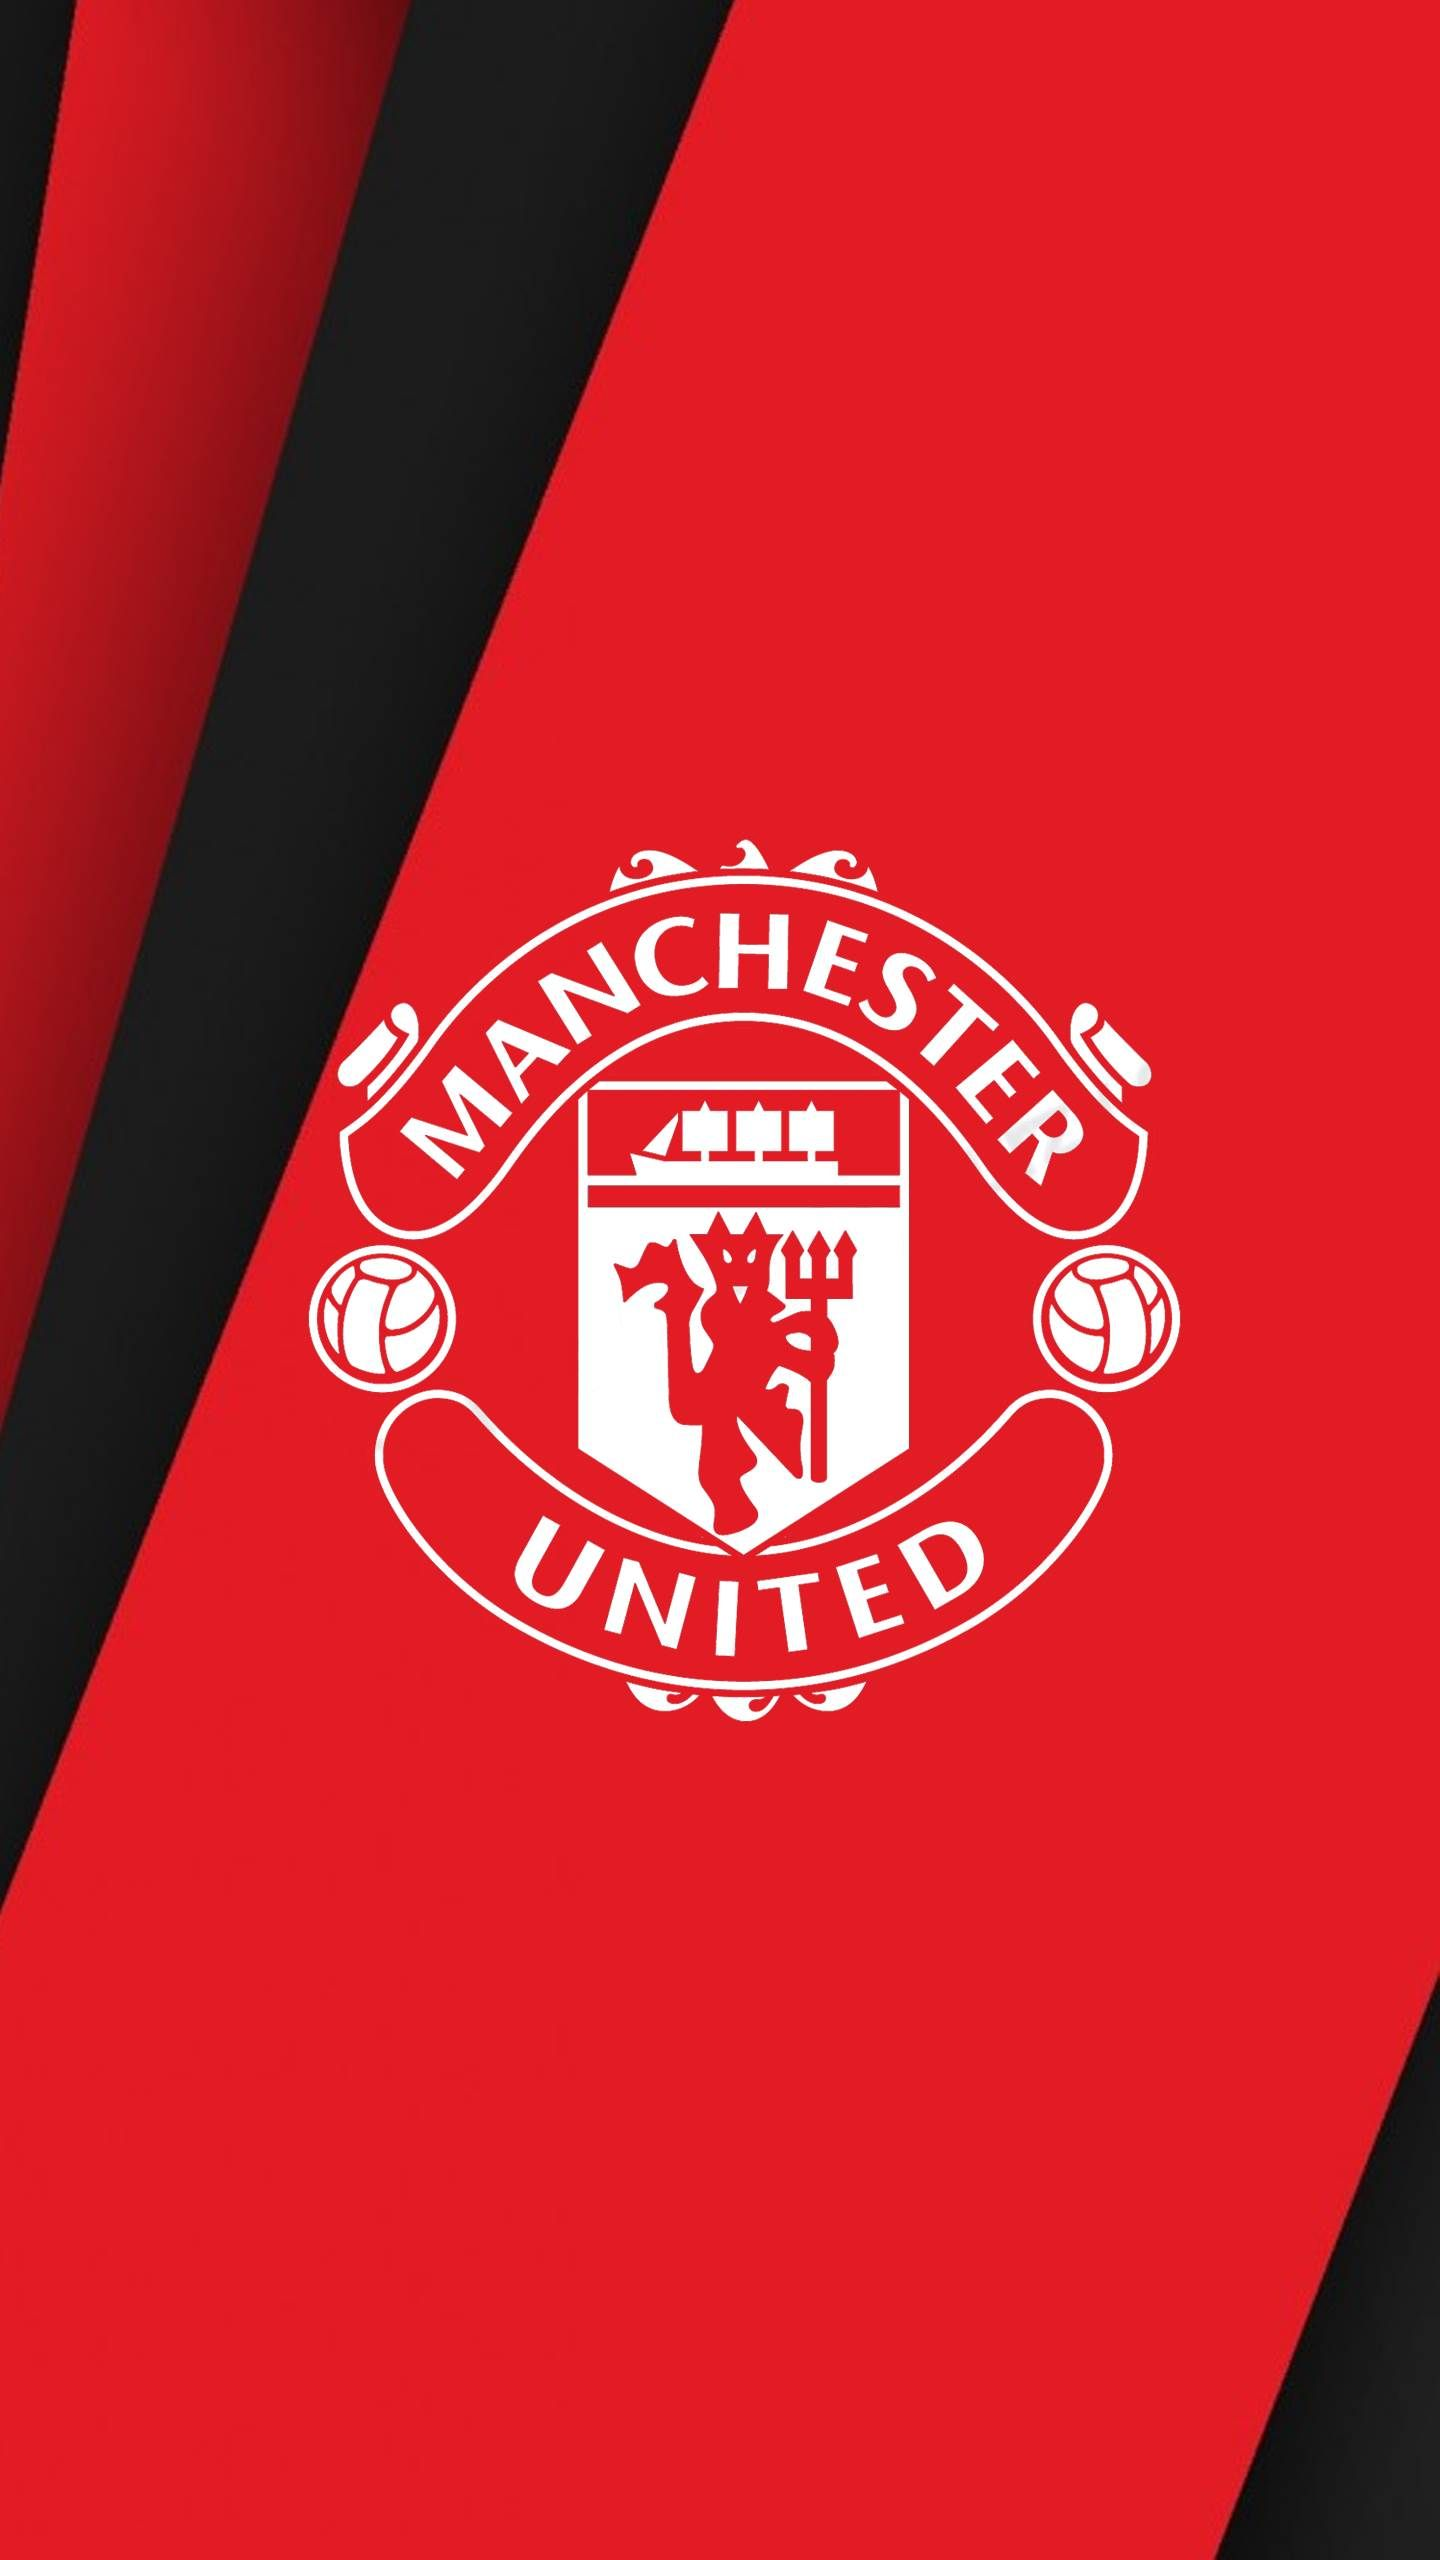 Manchester United Wallpapers Hd Desktop Pictures 48 Guanchaoge All Wallpapers